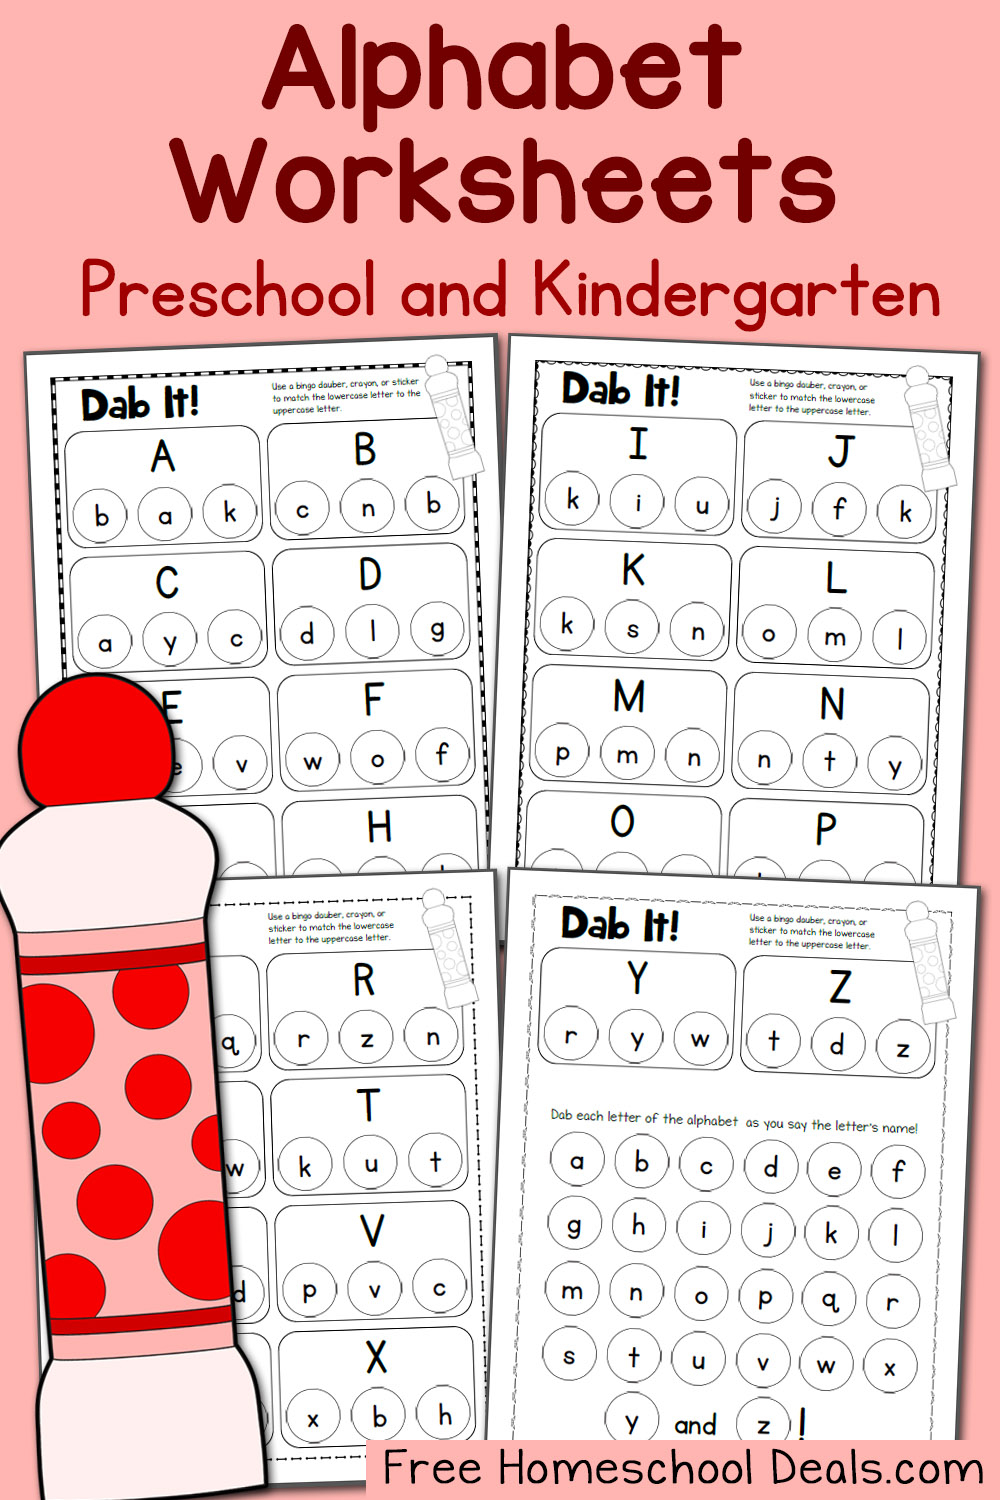 Free Alphabet Dot Pages Pack (Instant Download!) pertaining to Alphabet Dab Worksheets